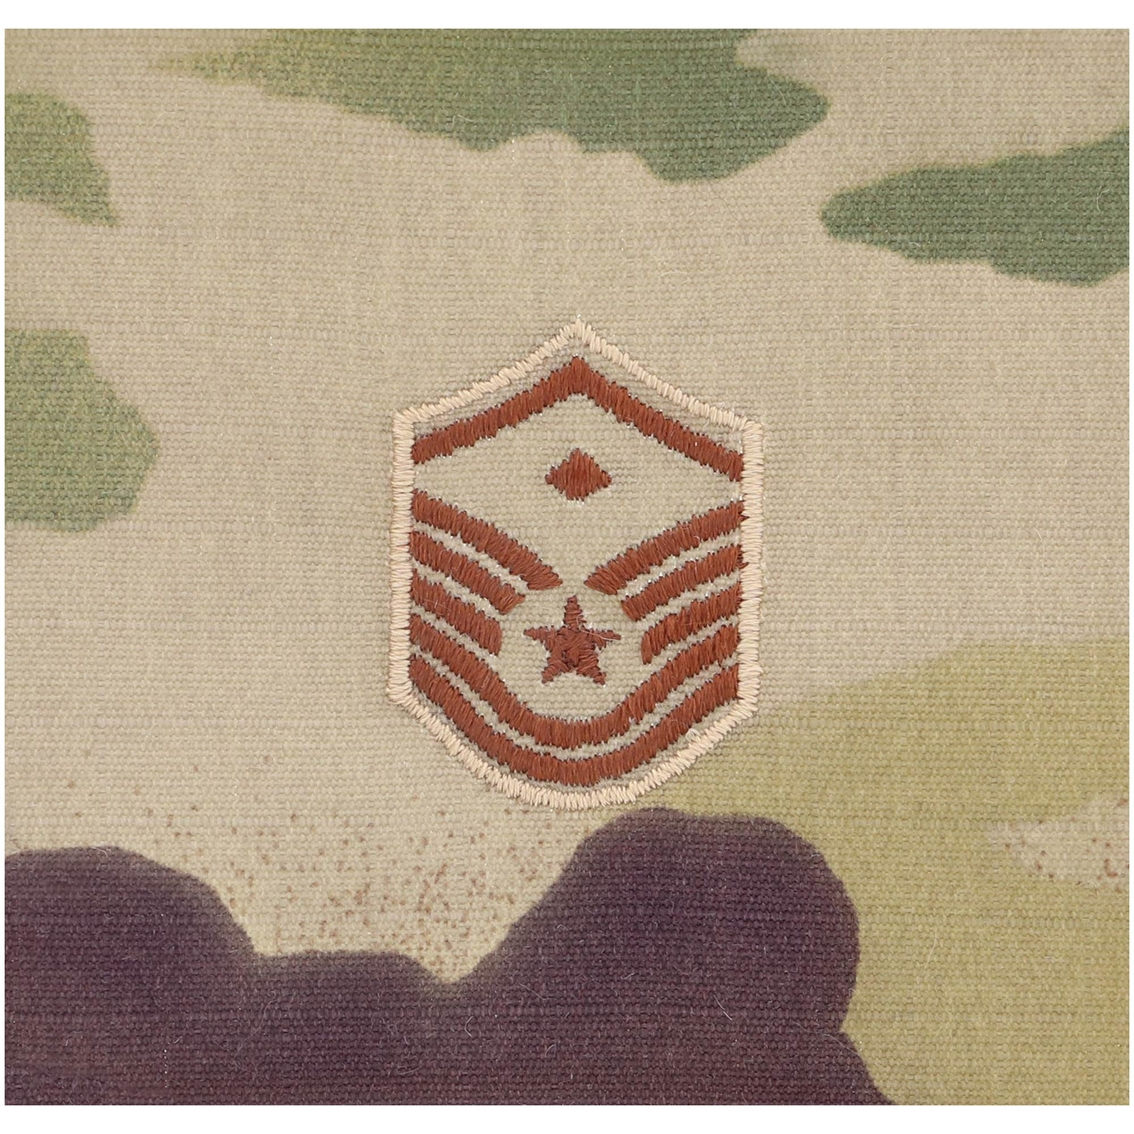 Air Force Chevron Master Sergeant With Diamond E-8 Sew-on